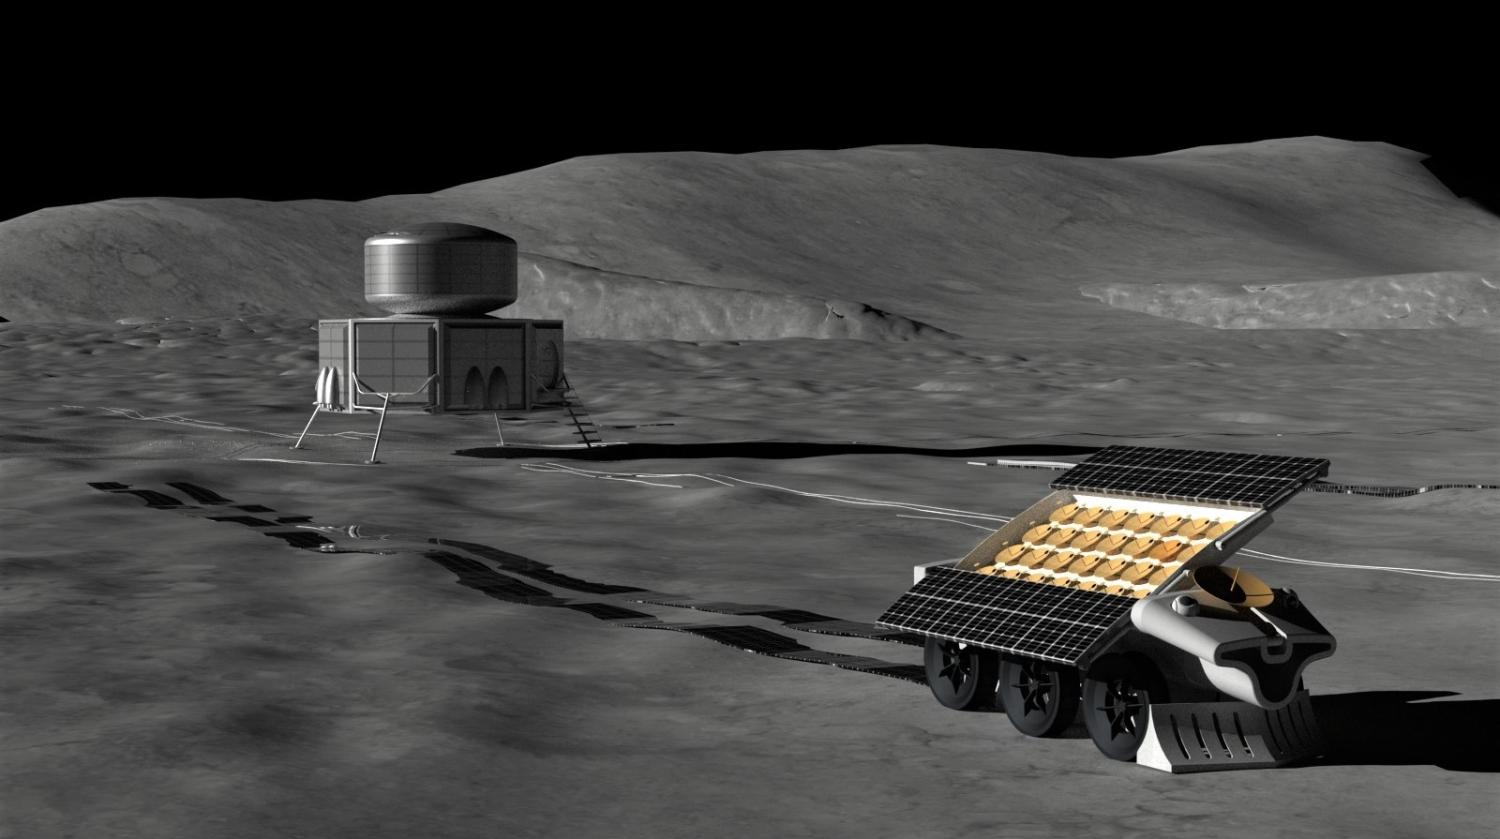 Artist's depiction of a robot laying out an antenna on the lunar surface.